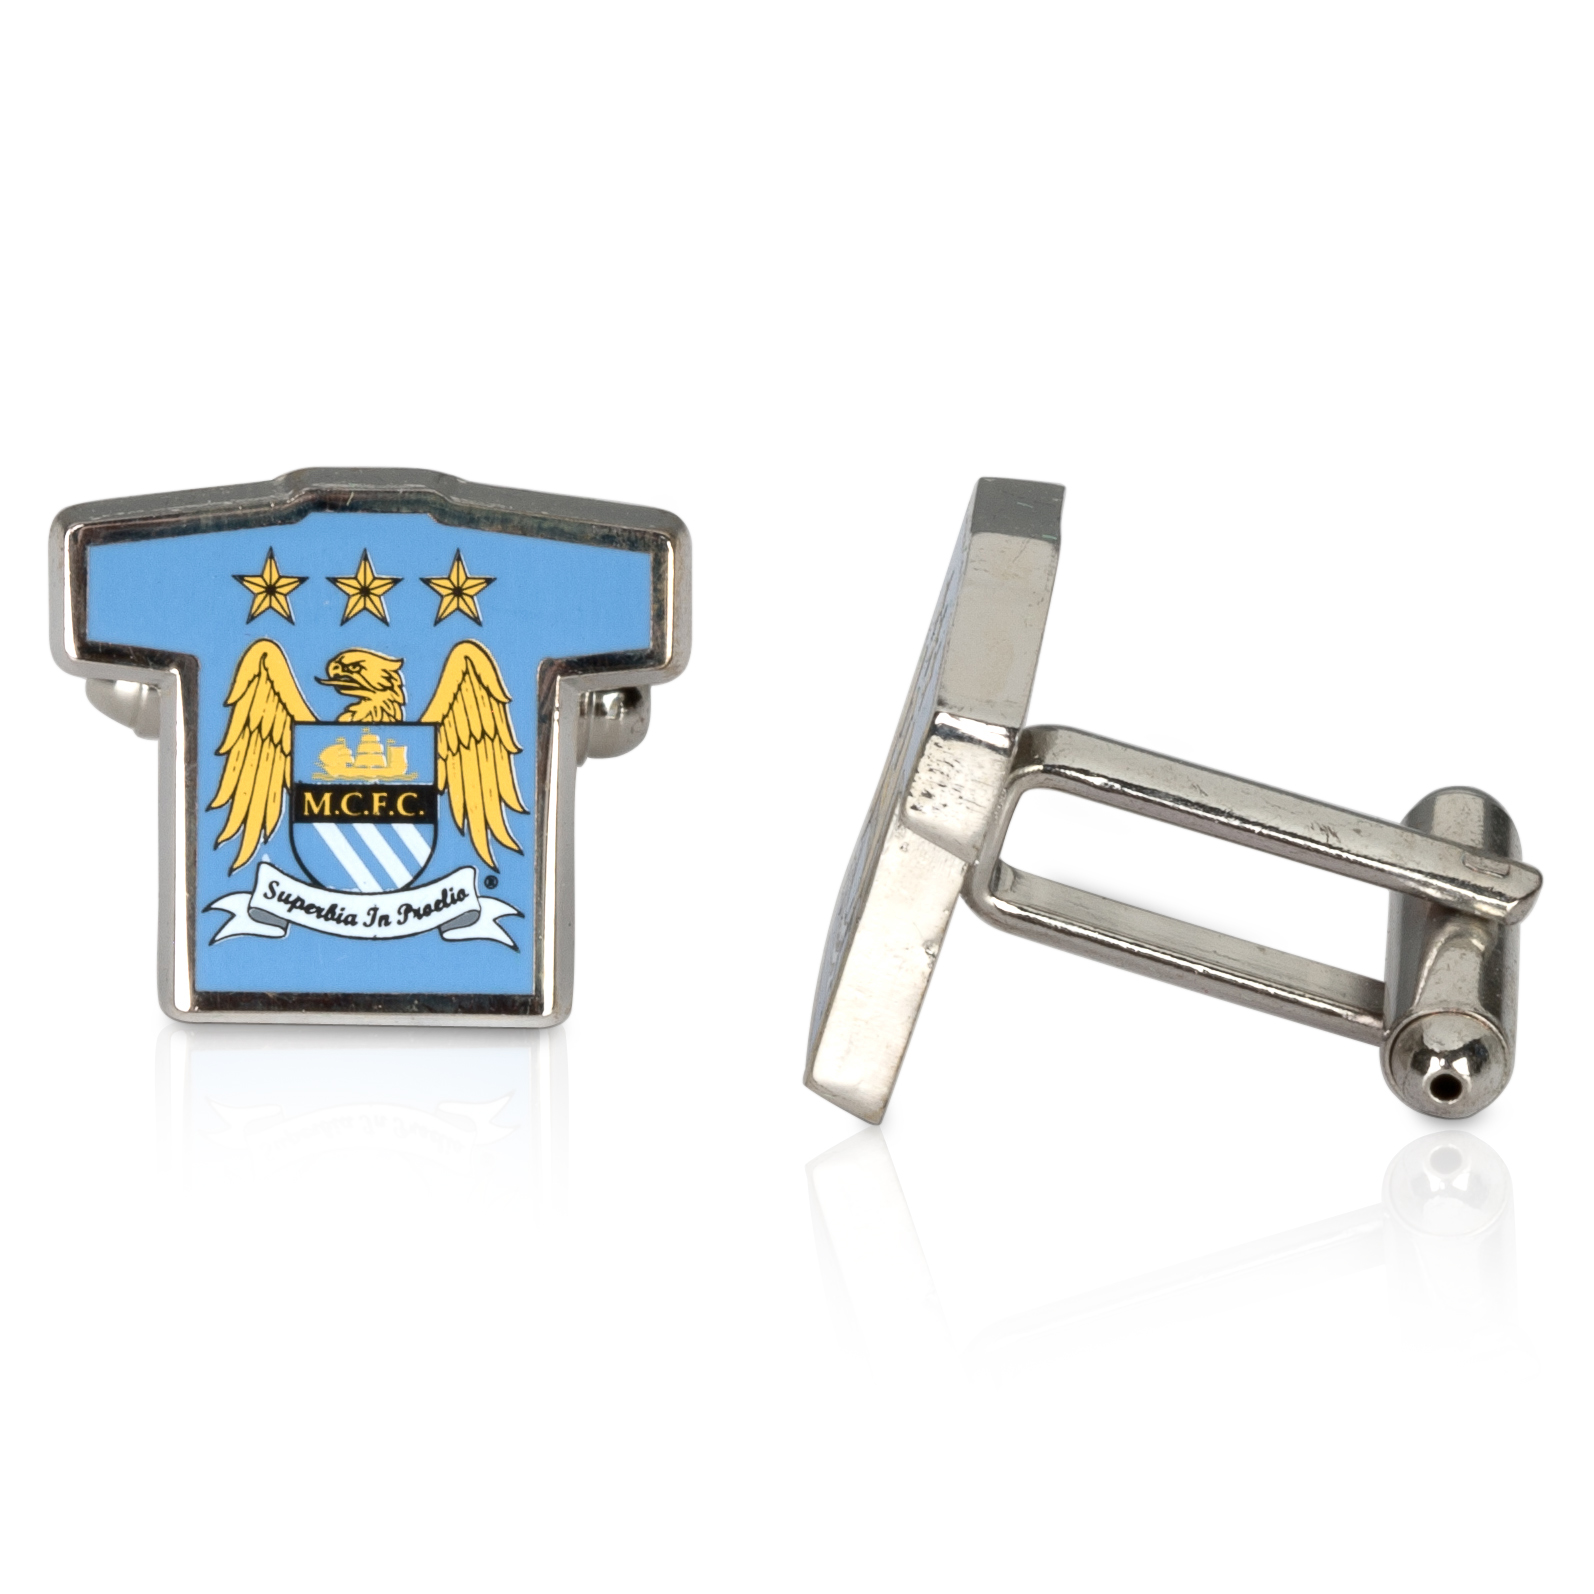 Manchester City Shirt Cufflinks